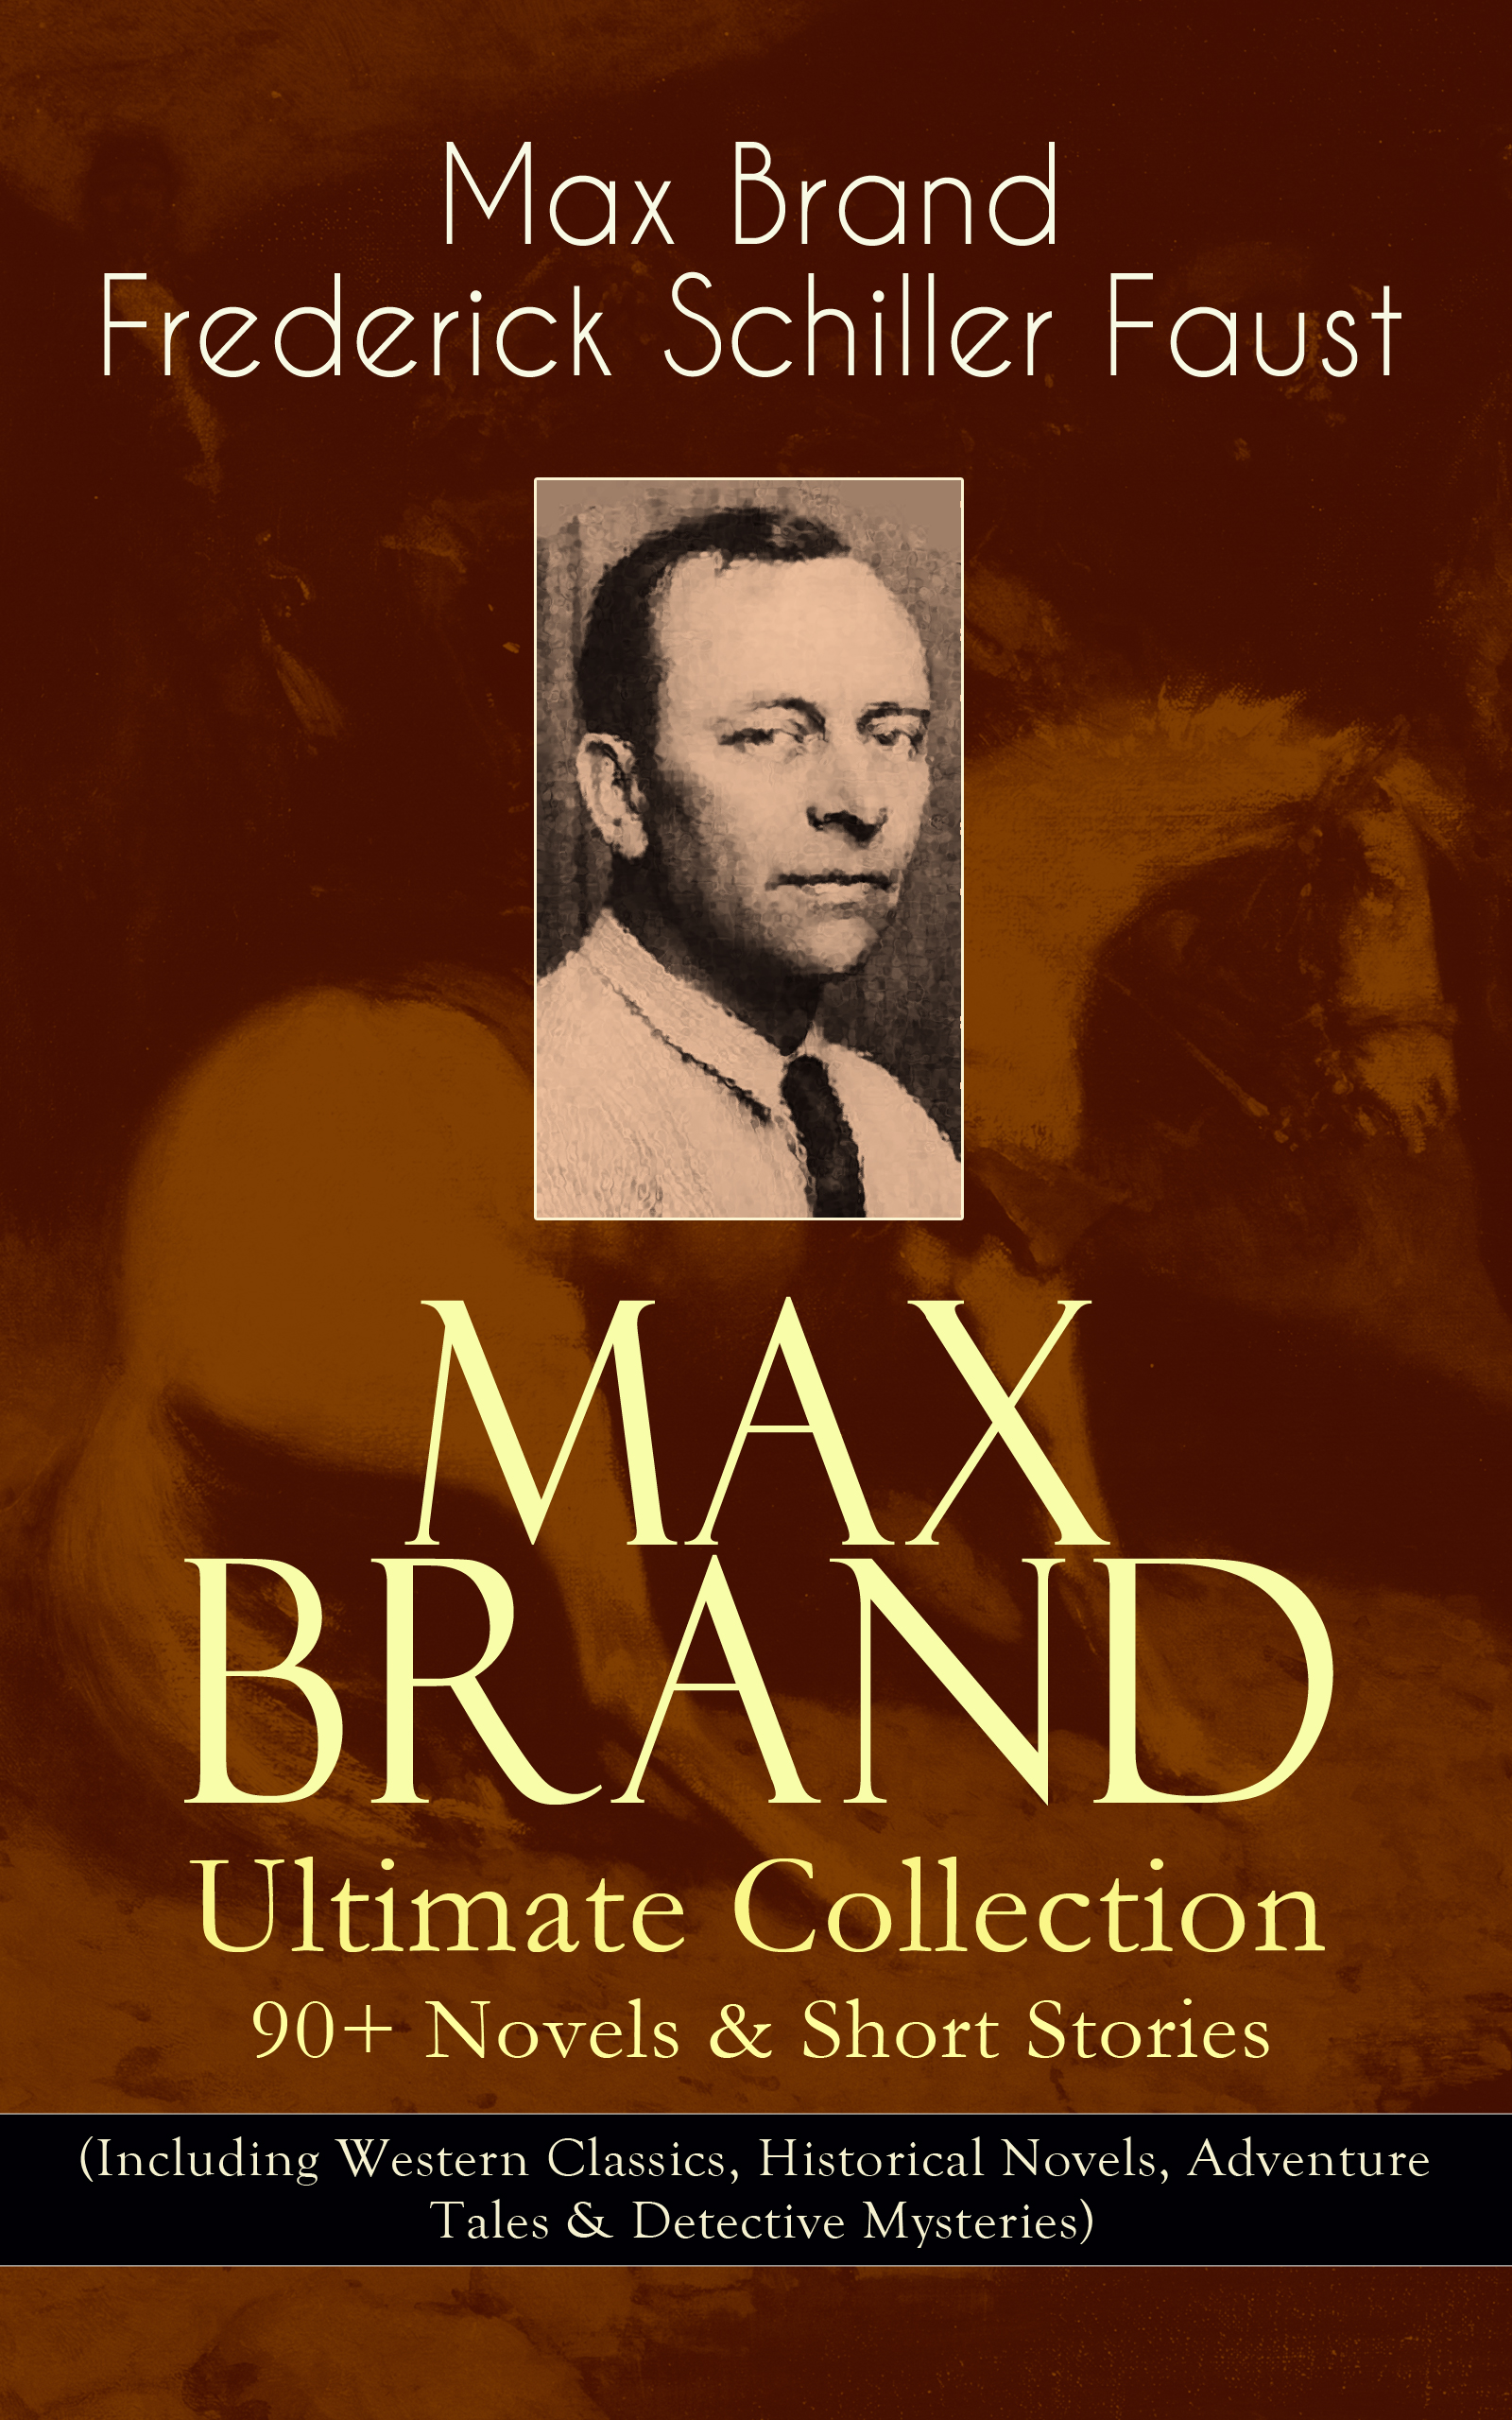 Max Brand MAX BRAND Ultimate Collection: 90+ Novels & Short Stories (Including Western Classics, Historical Novels, Adventure Tales & Detective Mysteries) max brand donnegan